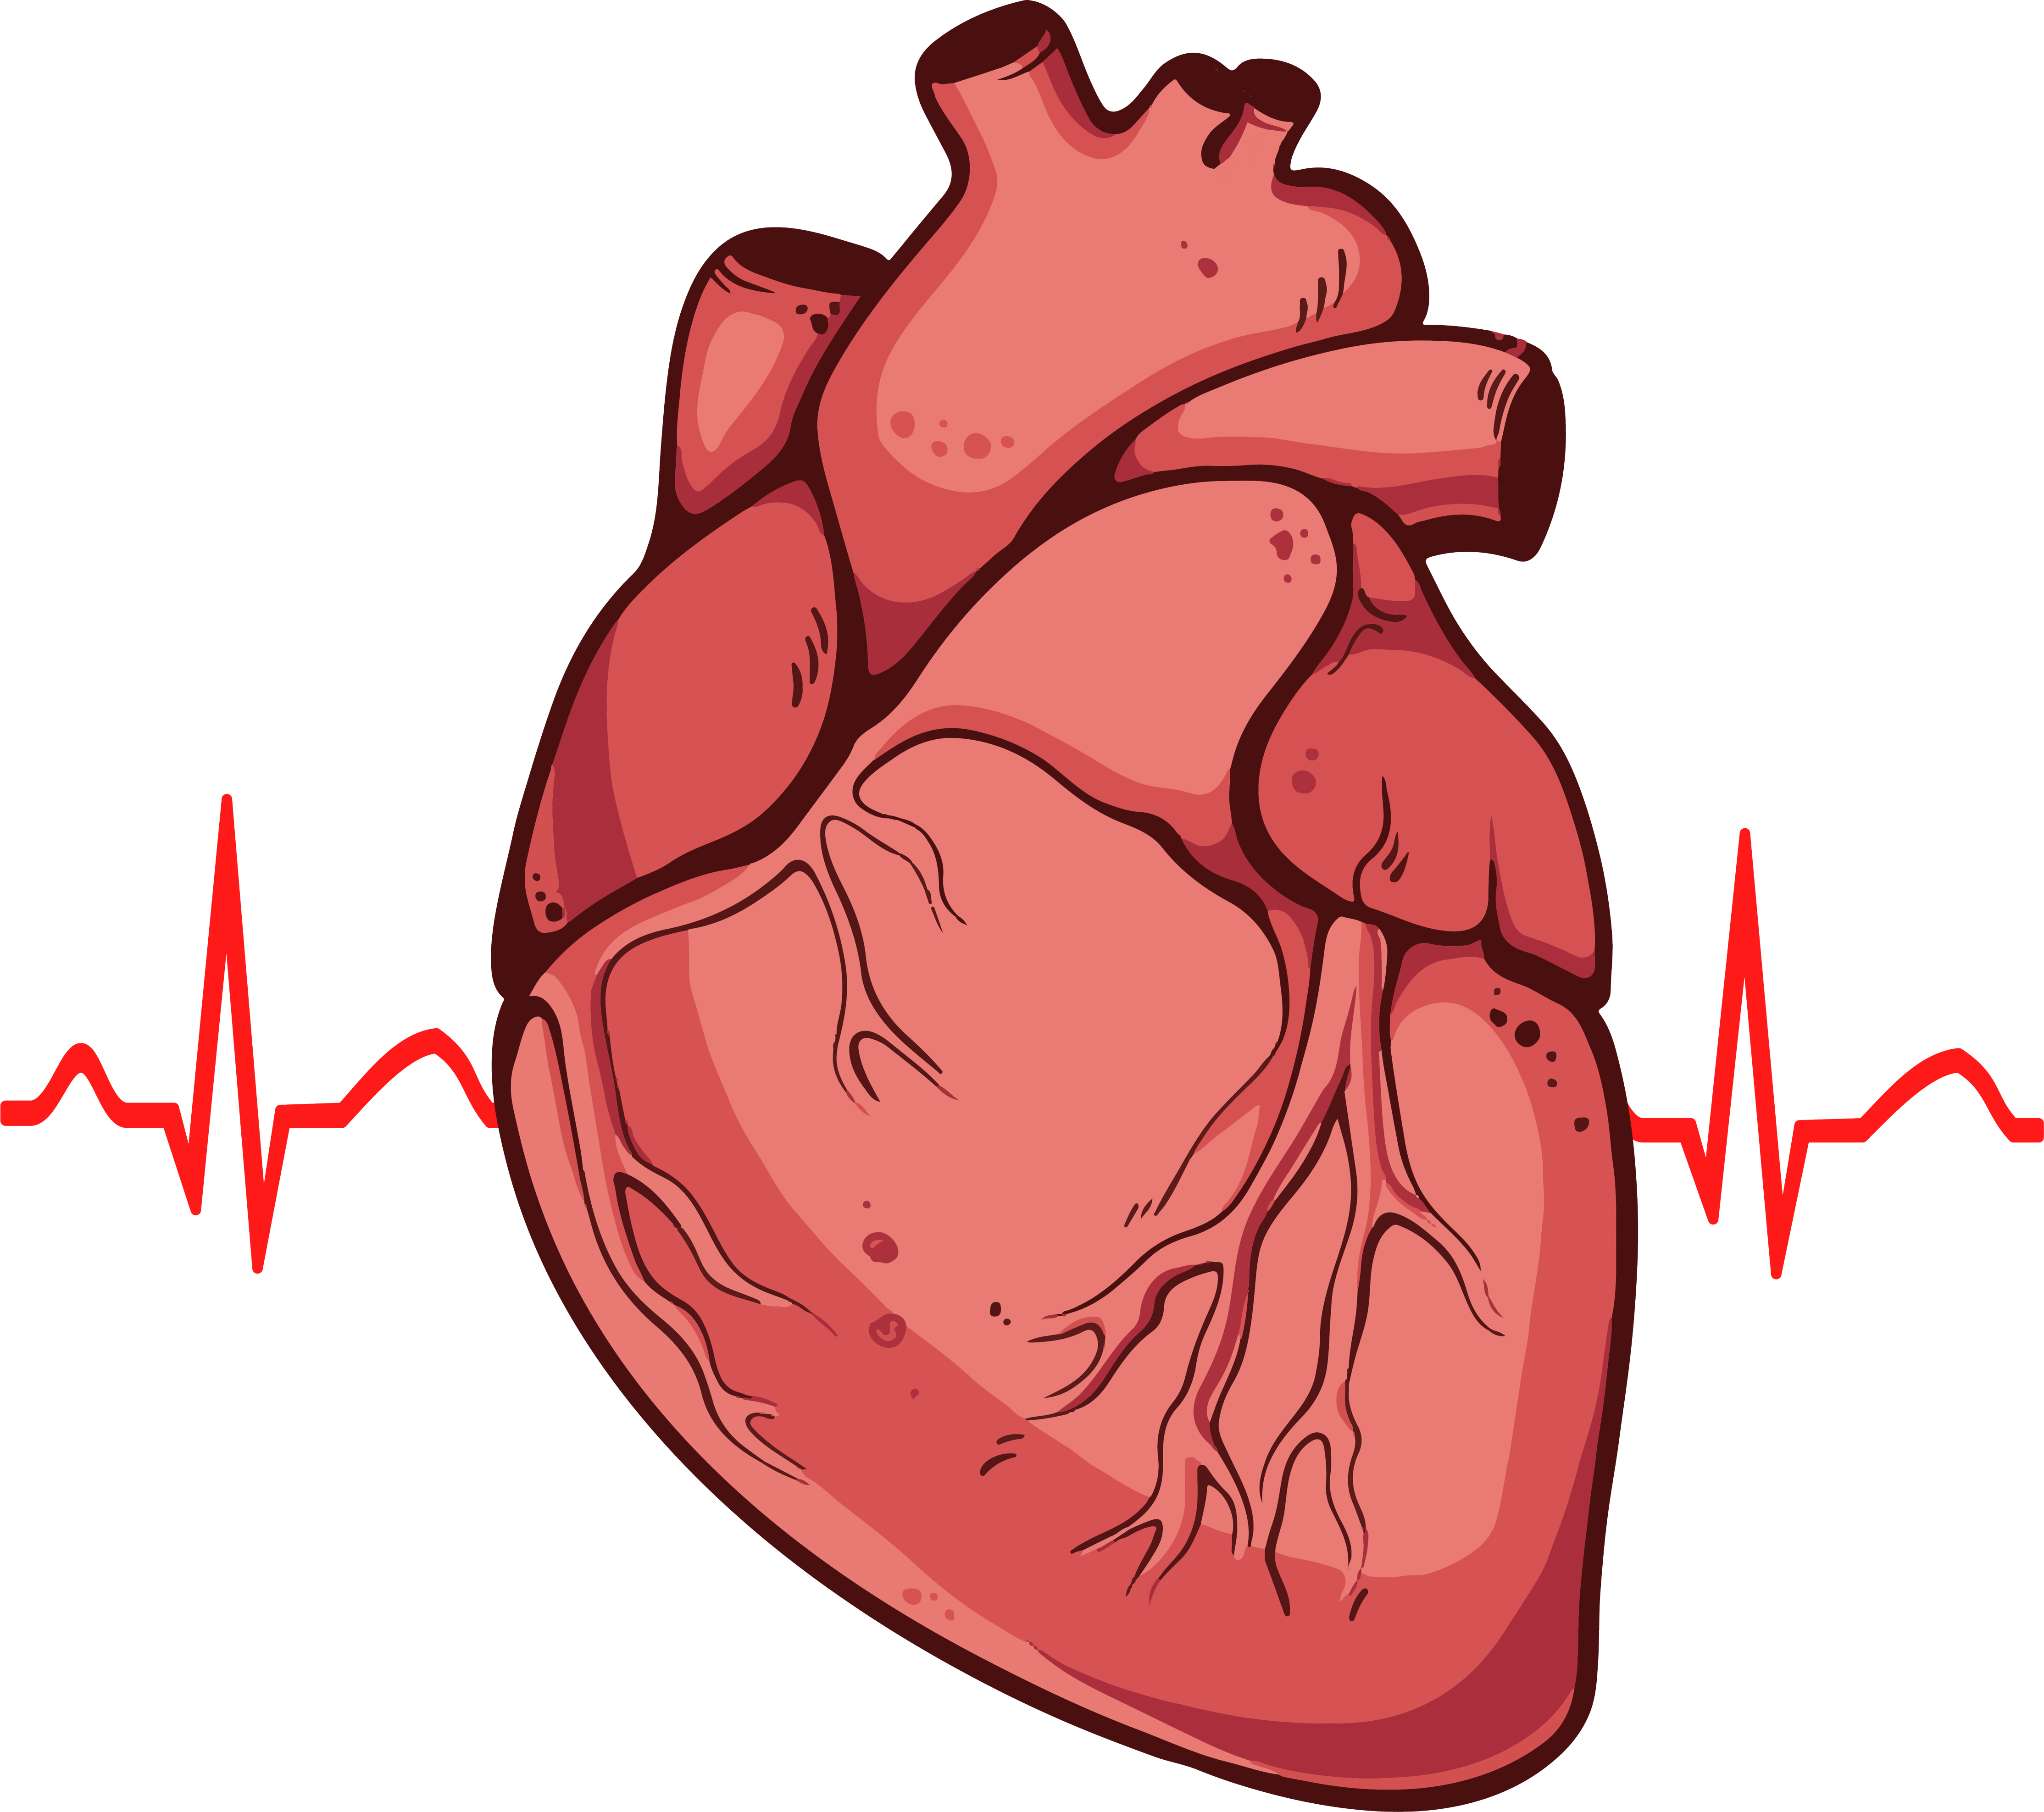 Heart anatomy clipart image royalty free stock 28+ Collection of Human Heart Clipart Png | High quality, free ... image royalty free stock